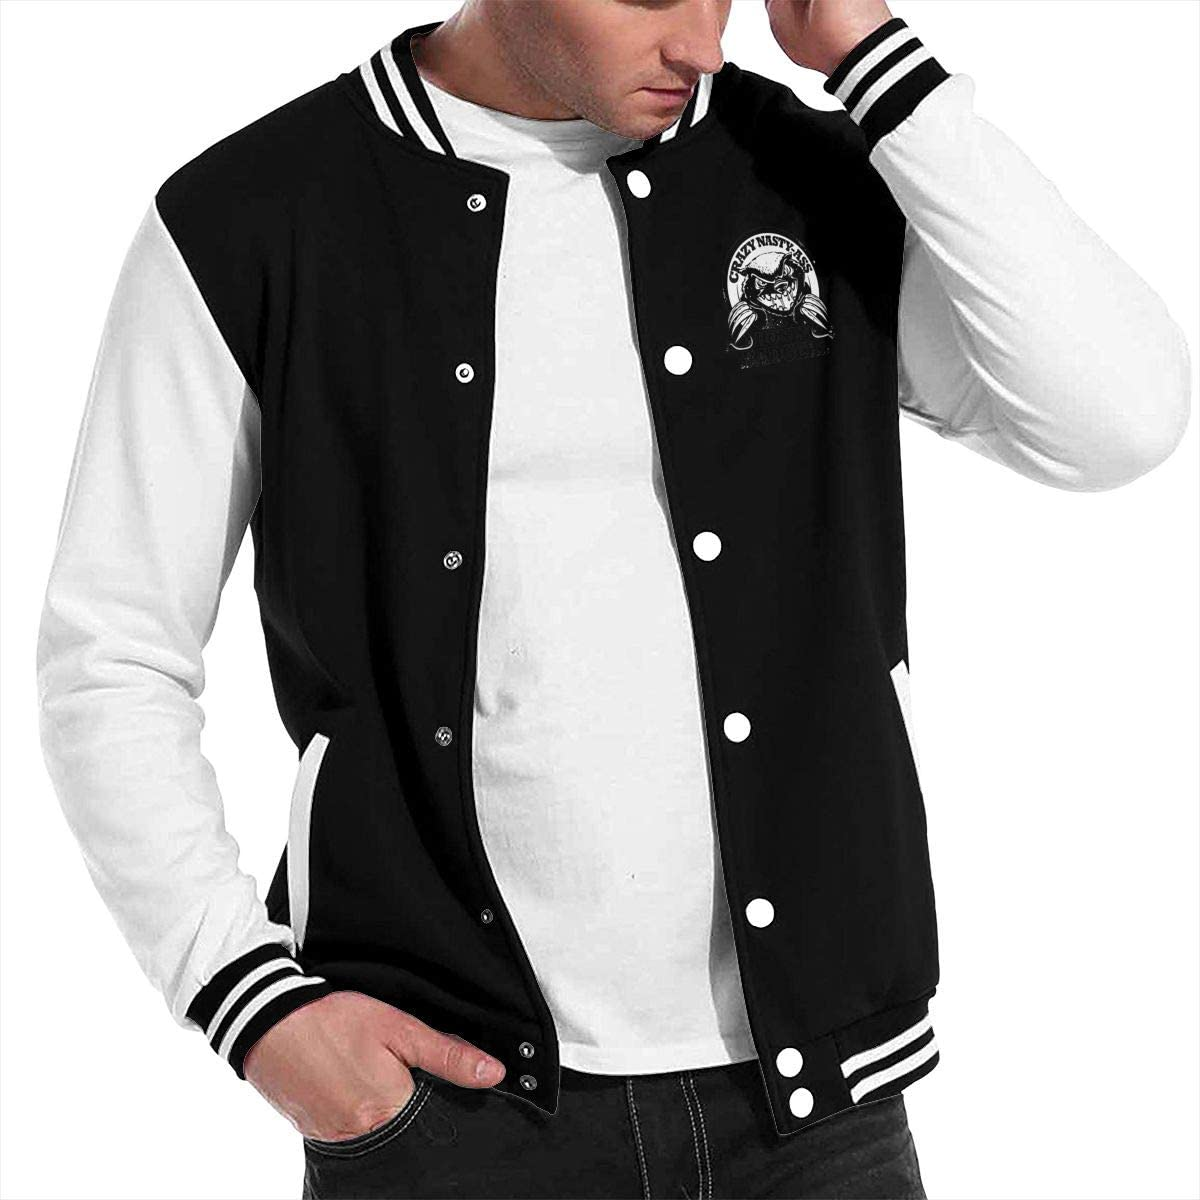 Honey Badger Unisex Baseball Uniform Jacket Sport Coat Sweater Coat